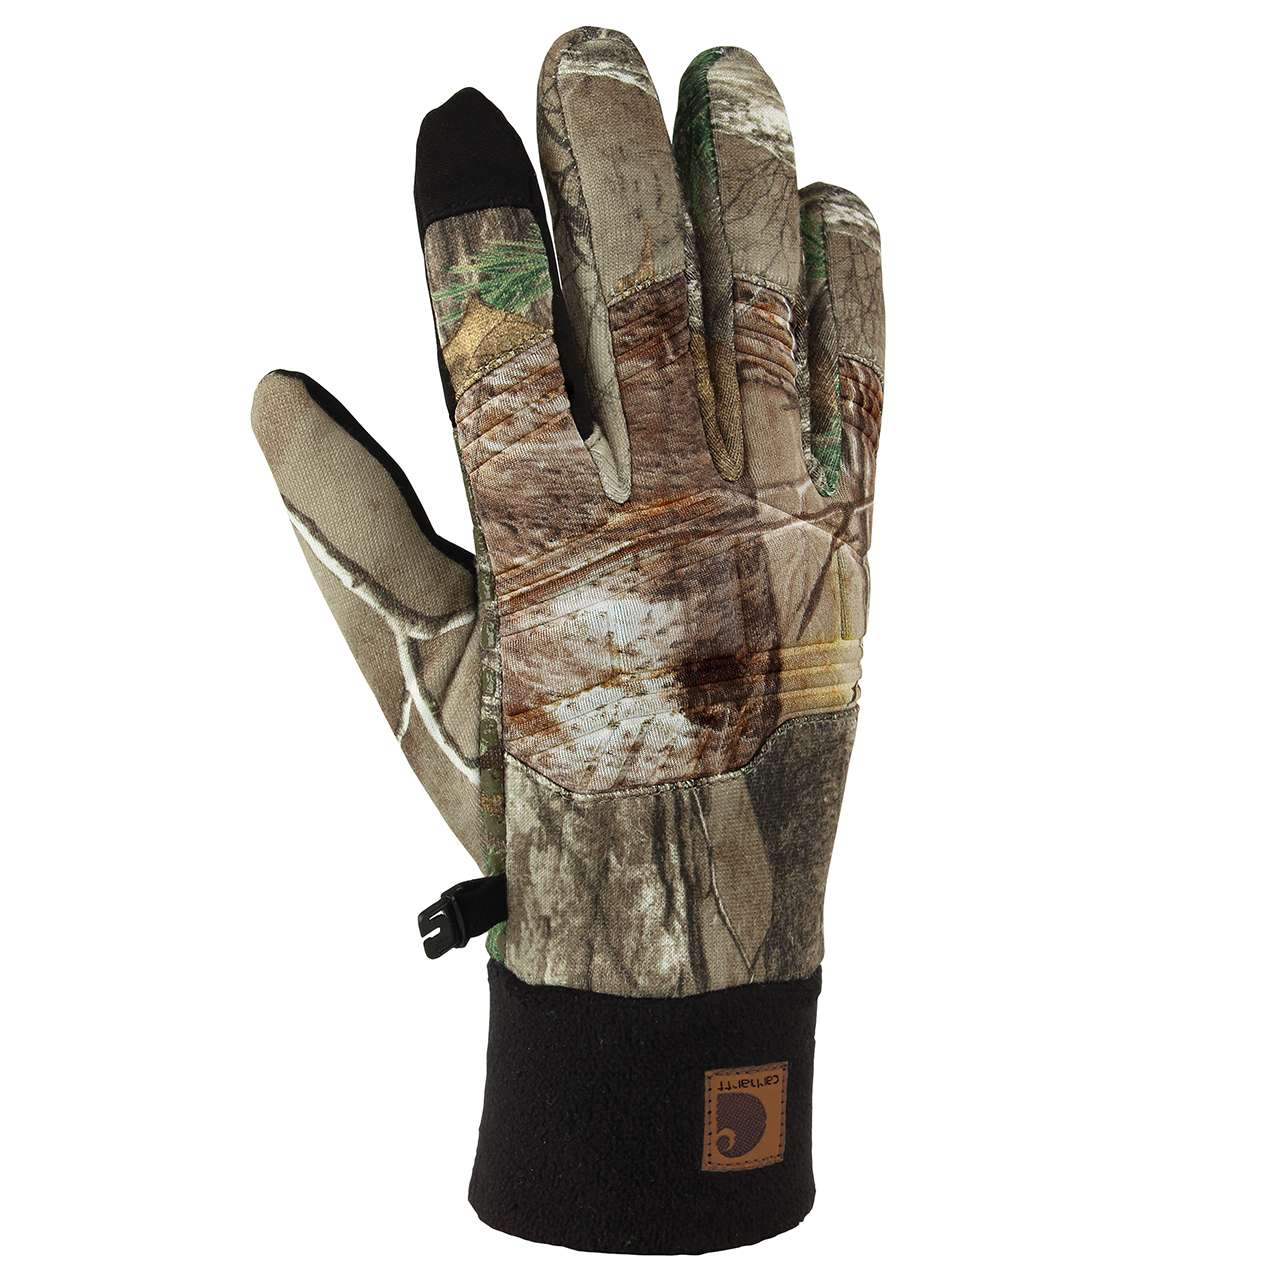 Carhartt Lightweight Shooting Camo Glove